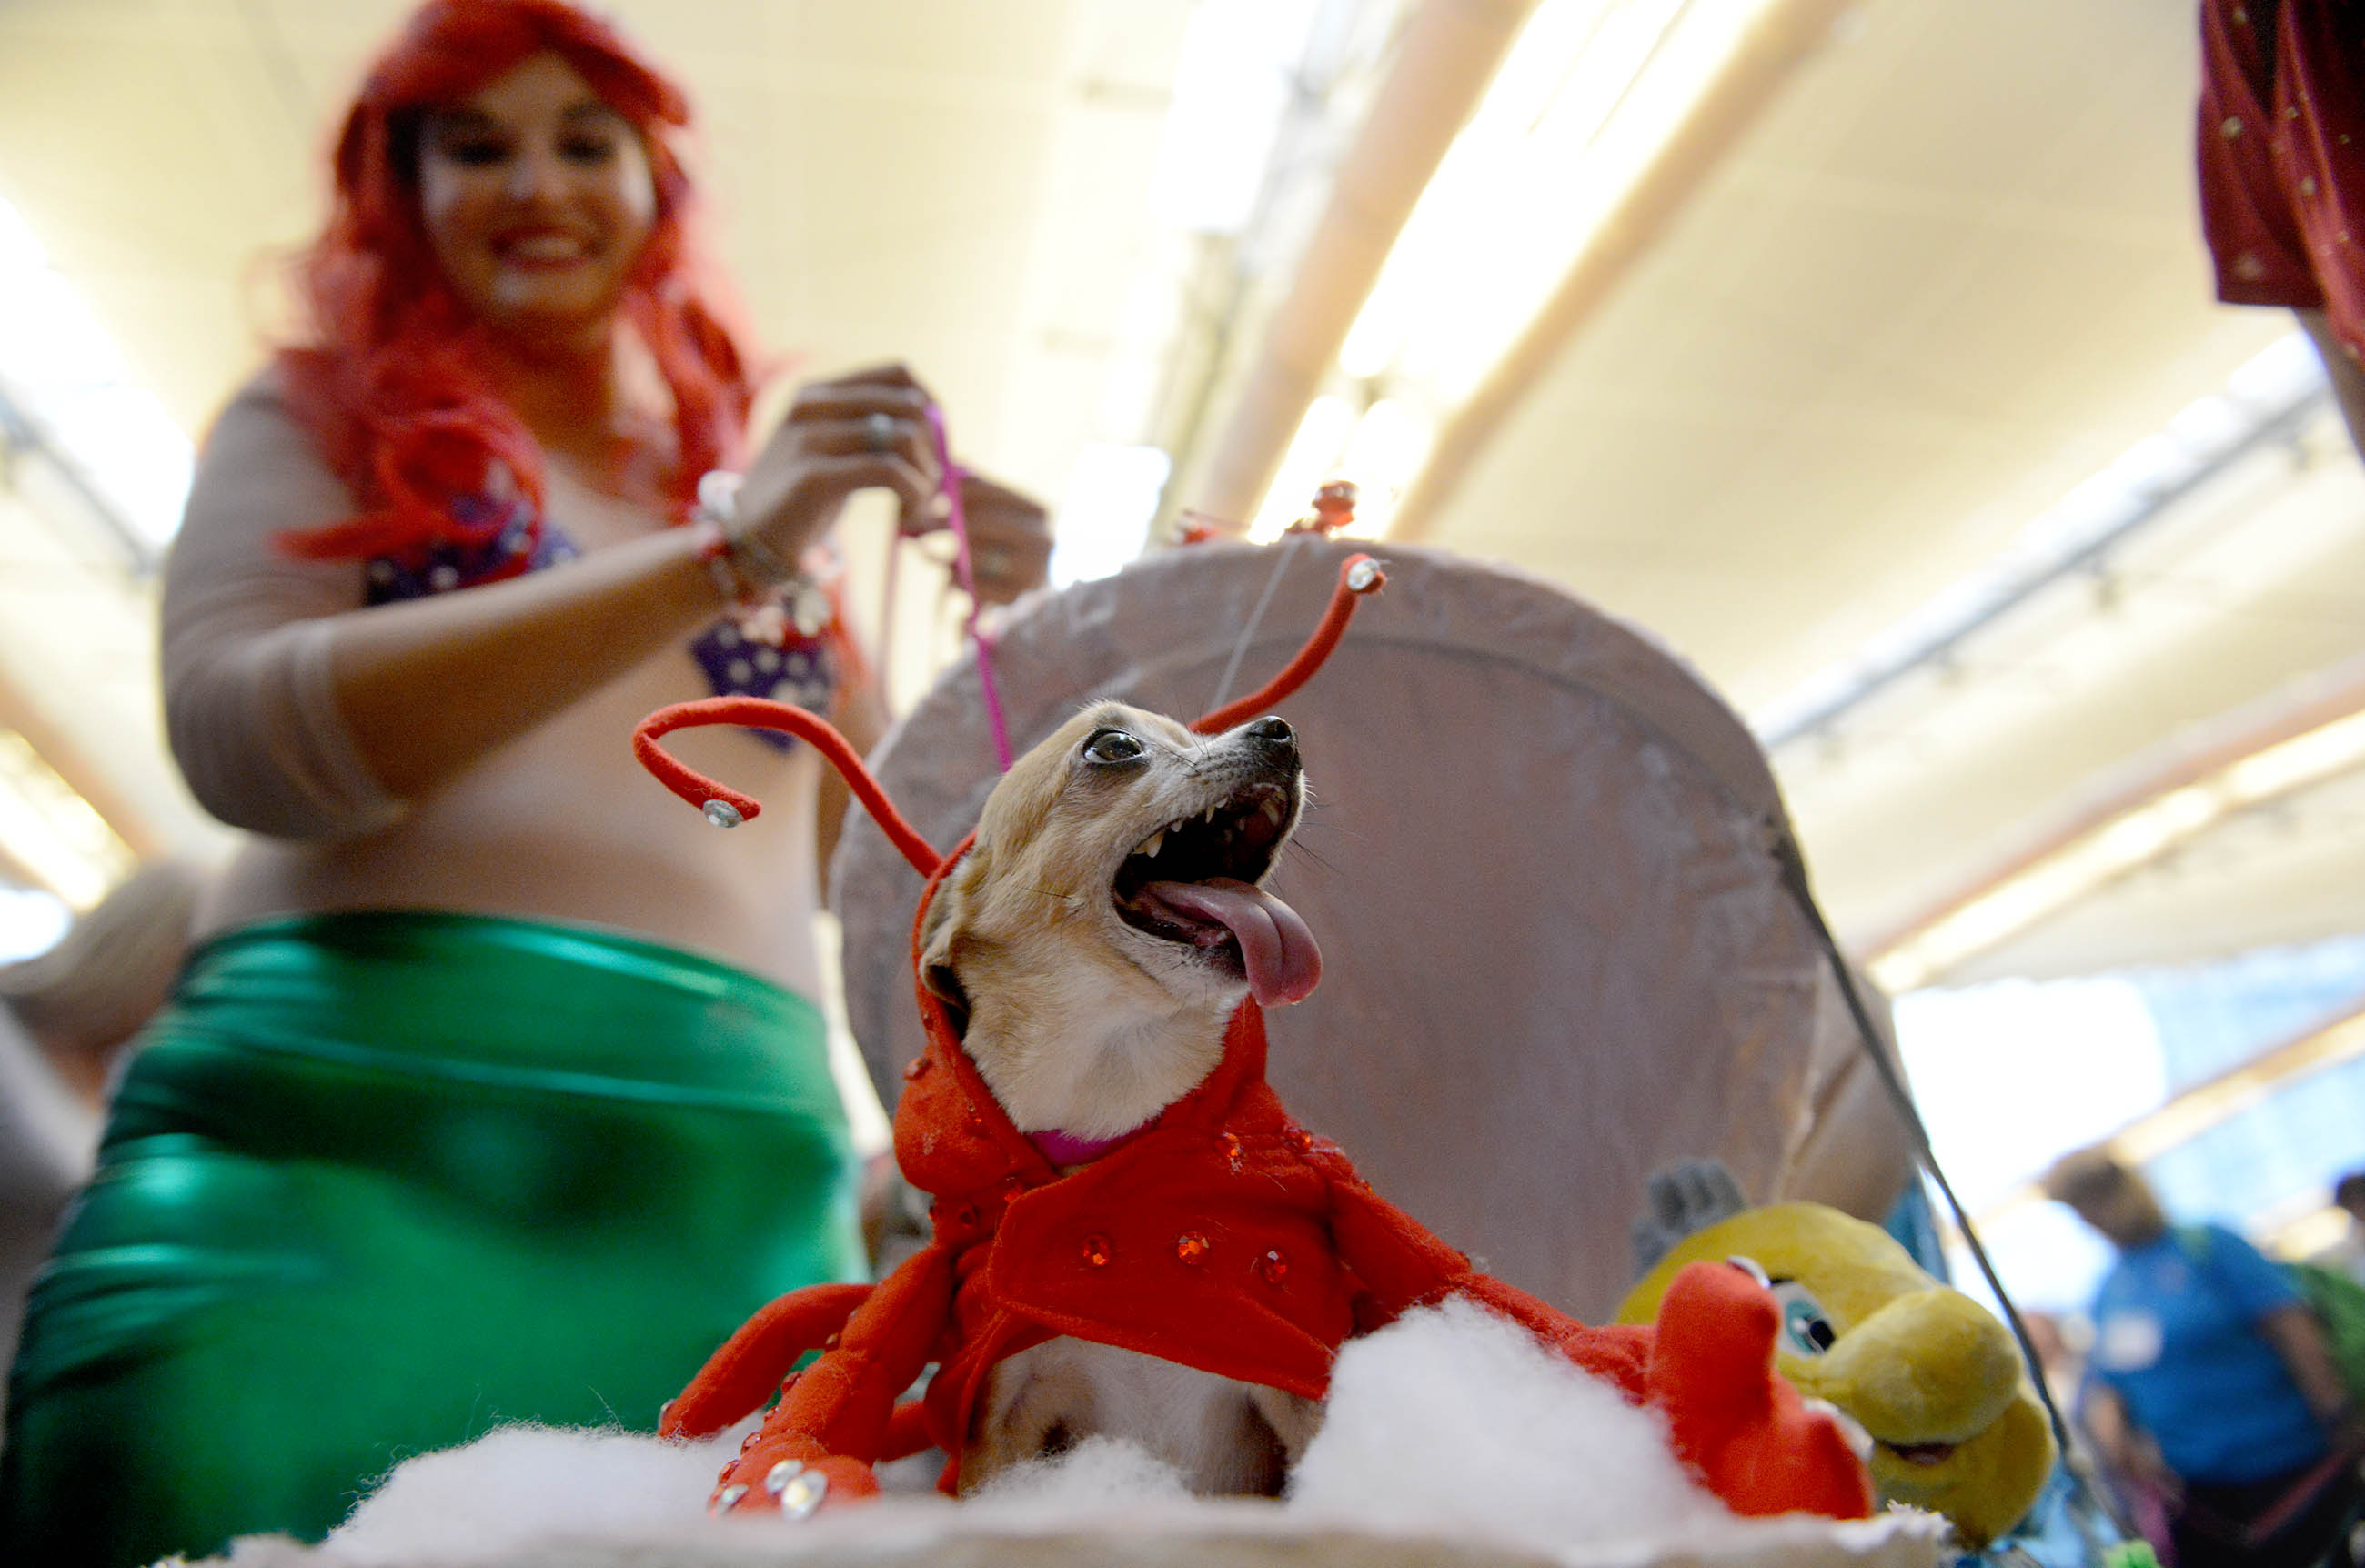 """20161030MWHdogcostumesLocal01 Roxy, a Chihuahua dressed as Sebastian the crab from """"Little Mermaid,"""" waits in line with his owner, Carmella Smith of West Mifflin, for the costume contest at the Pittsburgh Pet Expo in 2016."""